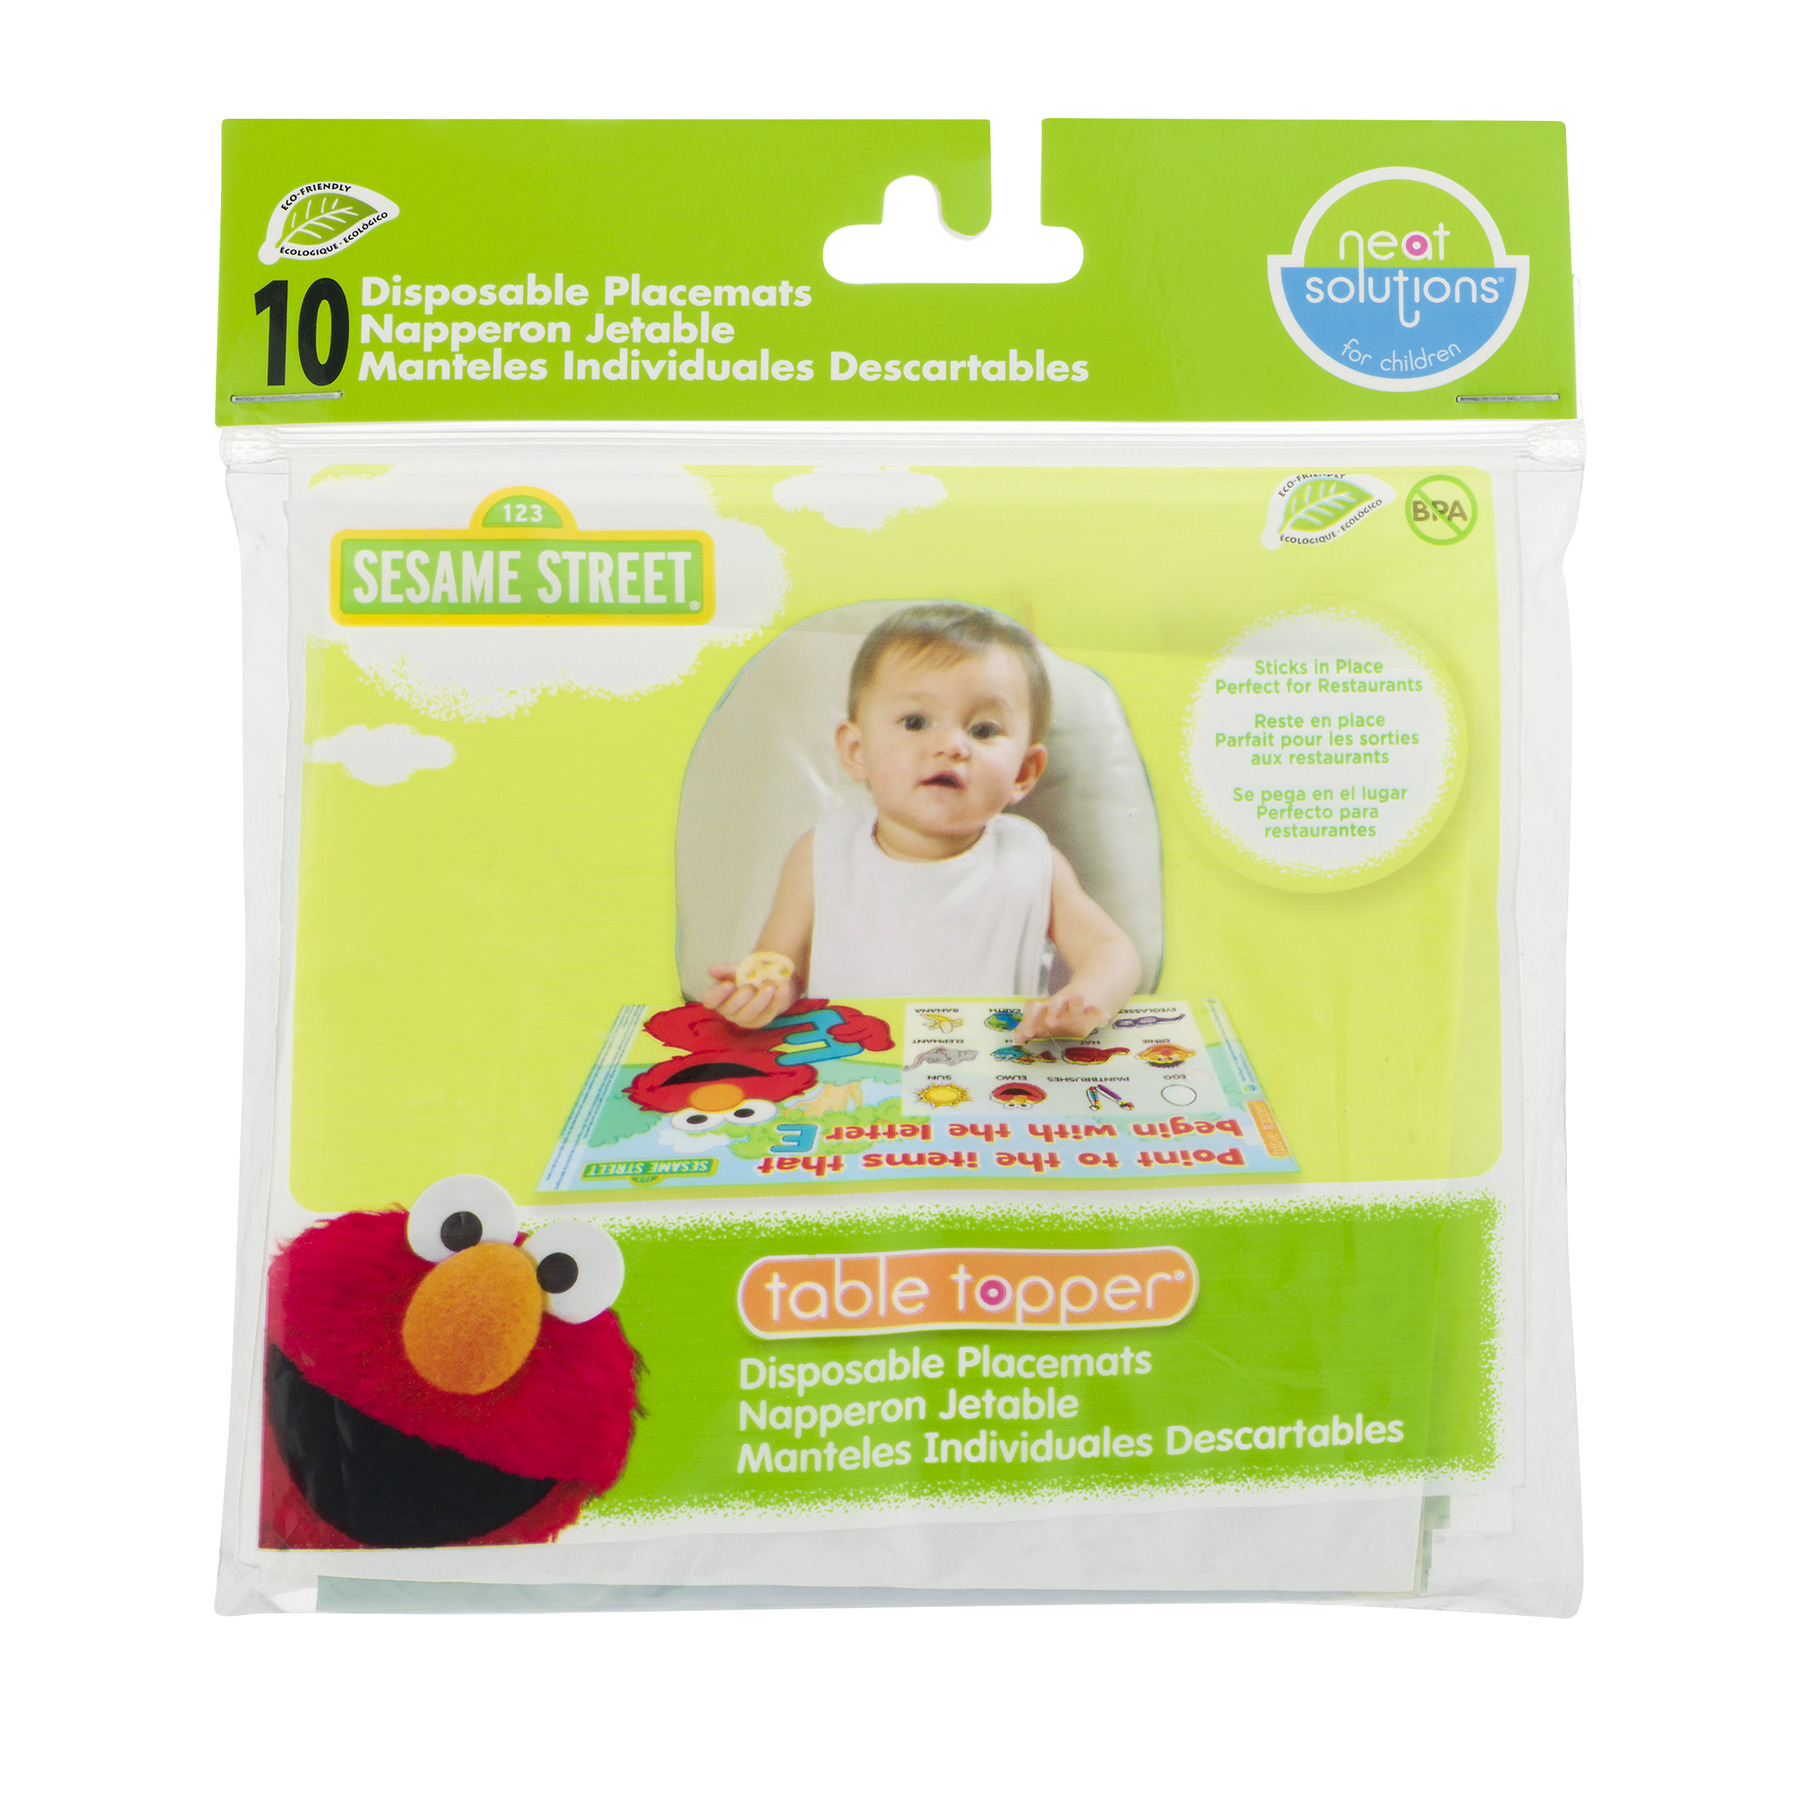 Neat Solutions Sesame Street Disposable Placemats - 10 CT10.0 CT